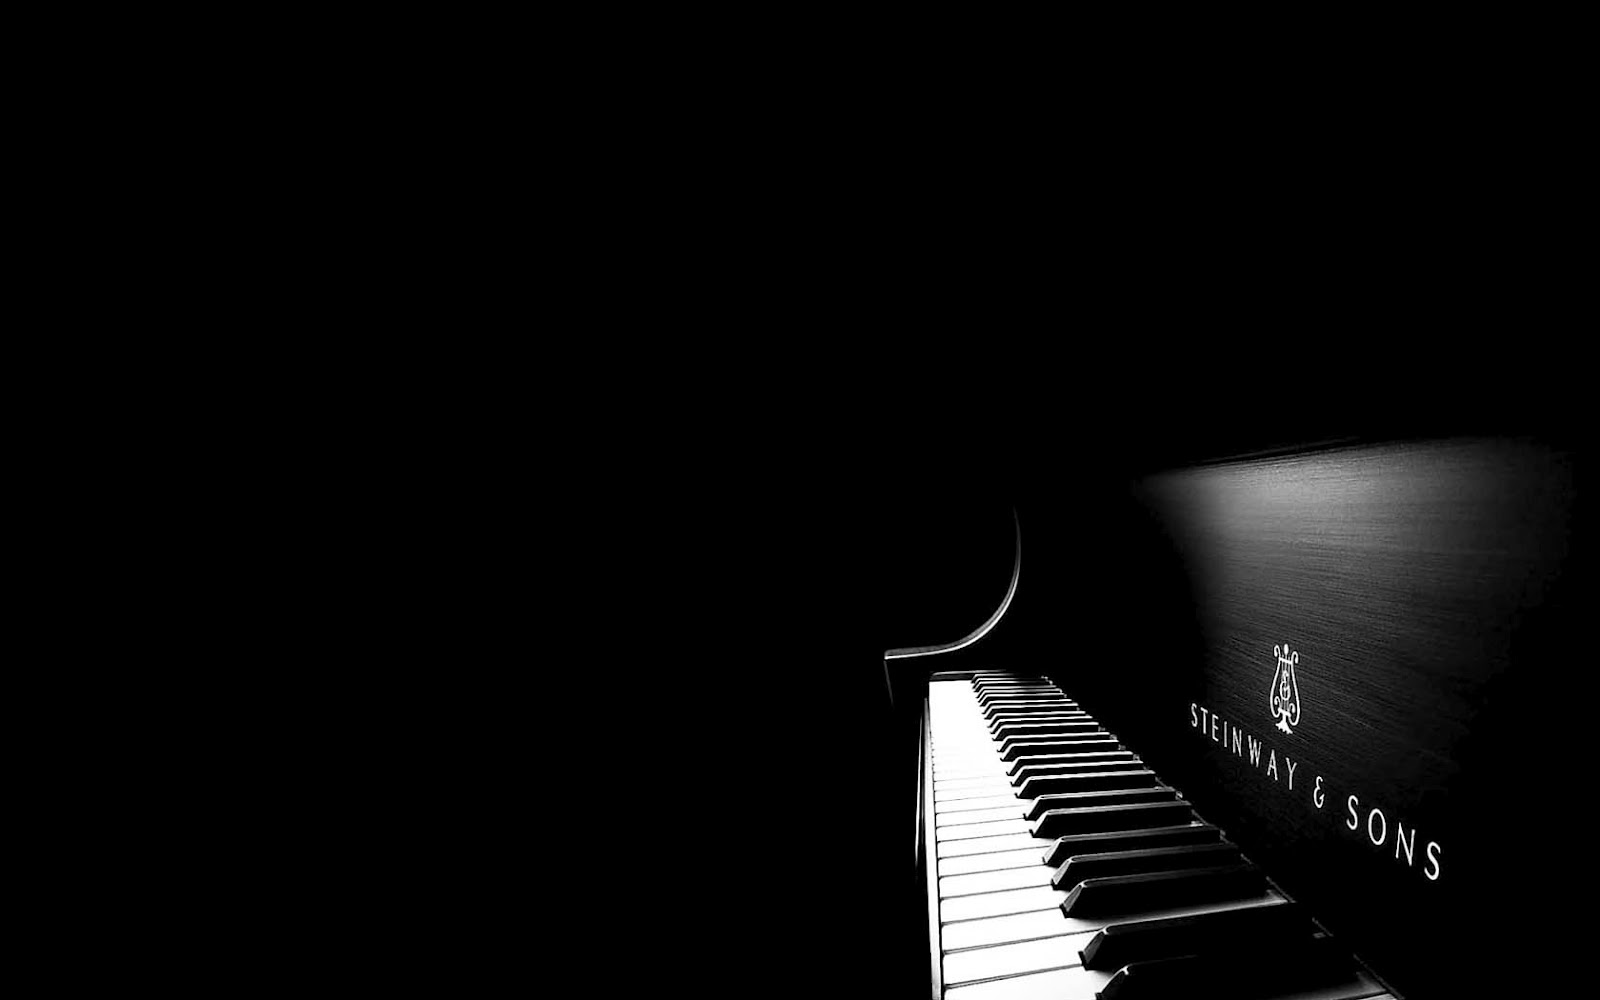 http://3.bp.blogspot.com/-TGr8kElo54Q/UGhDYR6clEI/AAAAAAAAE8g/vLQv82v4Rqc/s1600/Steinway-and-Sons-Piano-Close-Up-Photo-HD-Wallpaper--Vvallpaper.Net.jpg